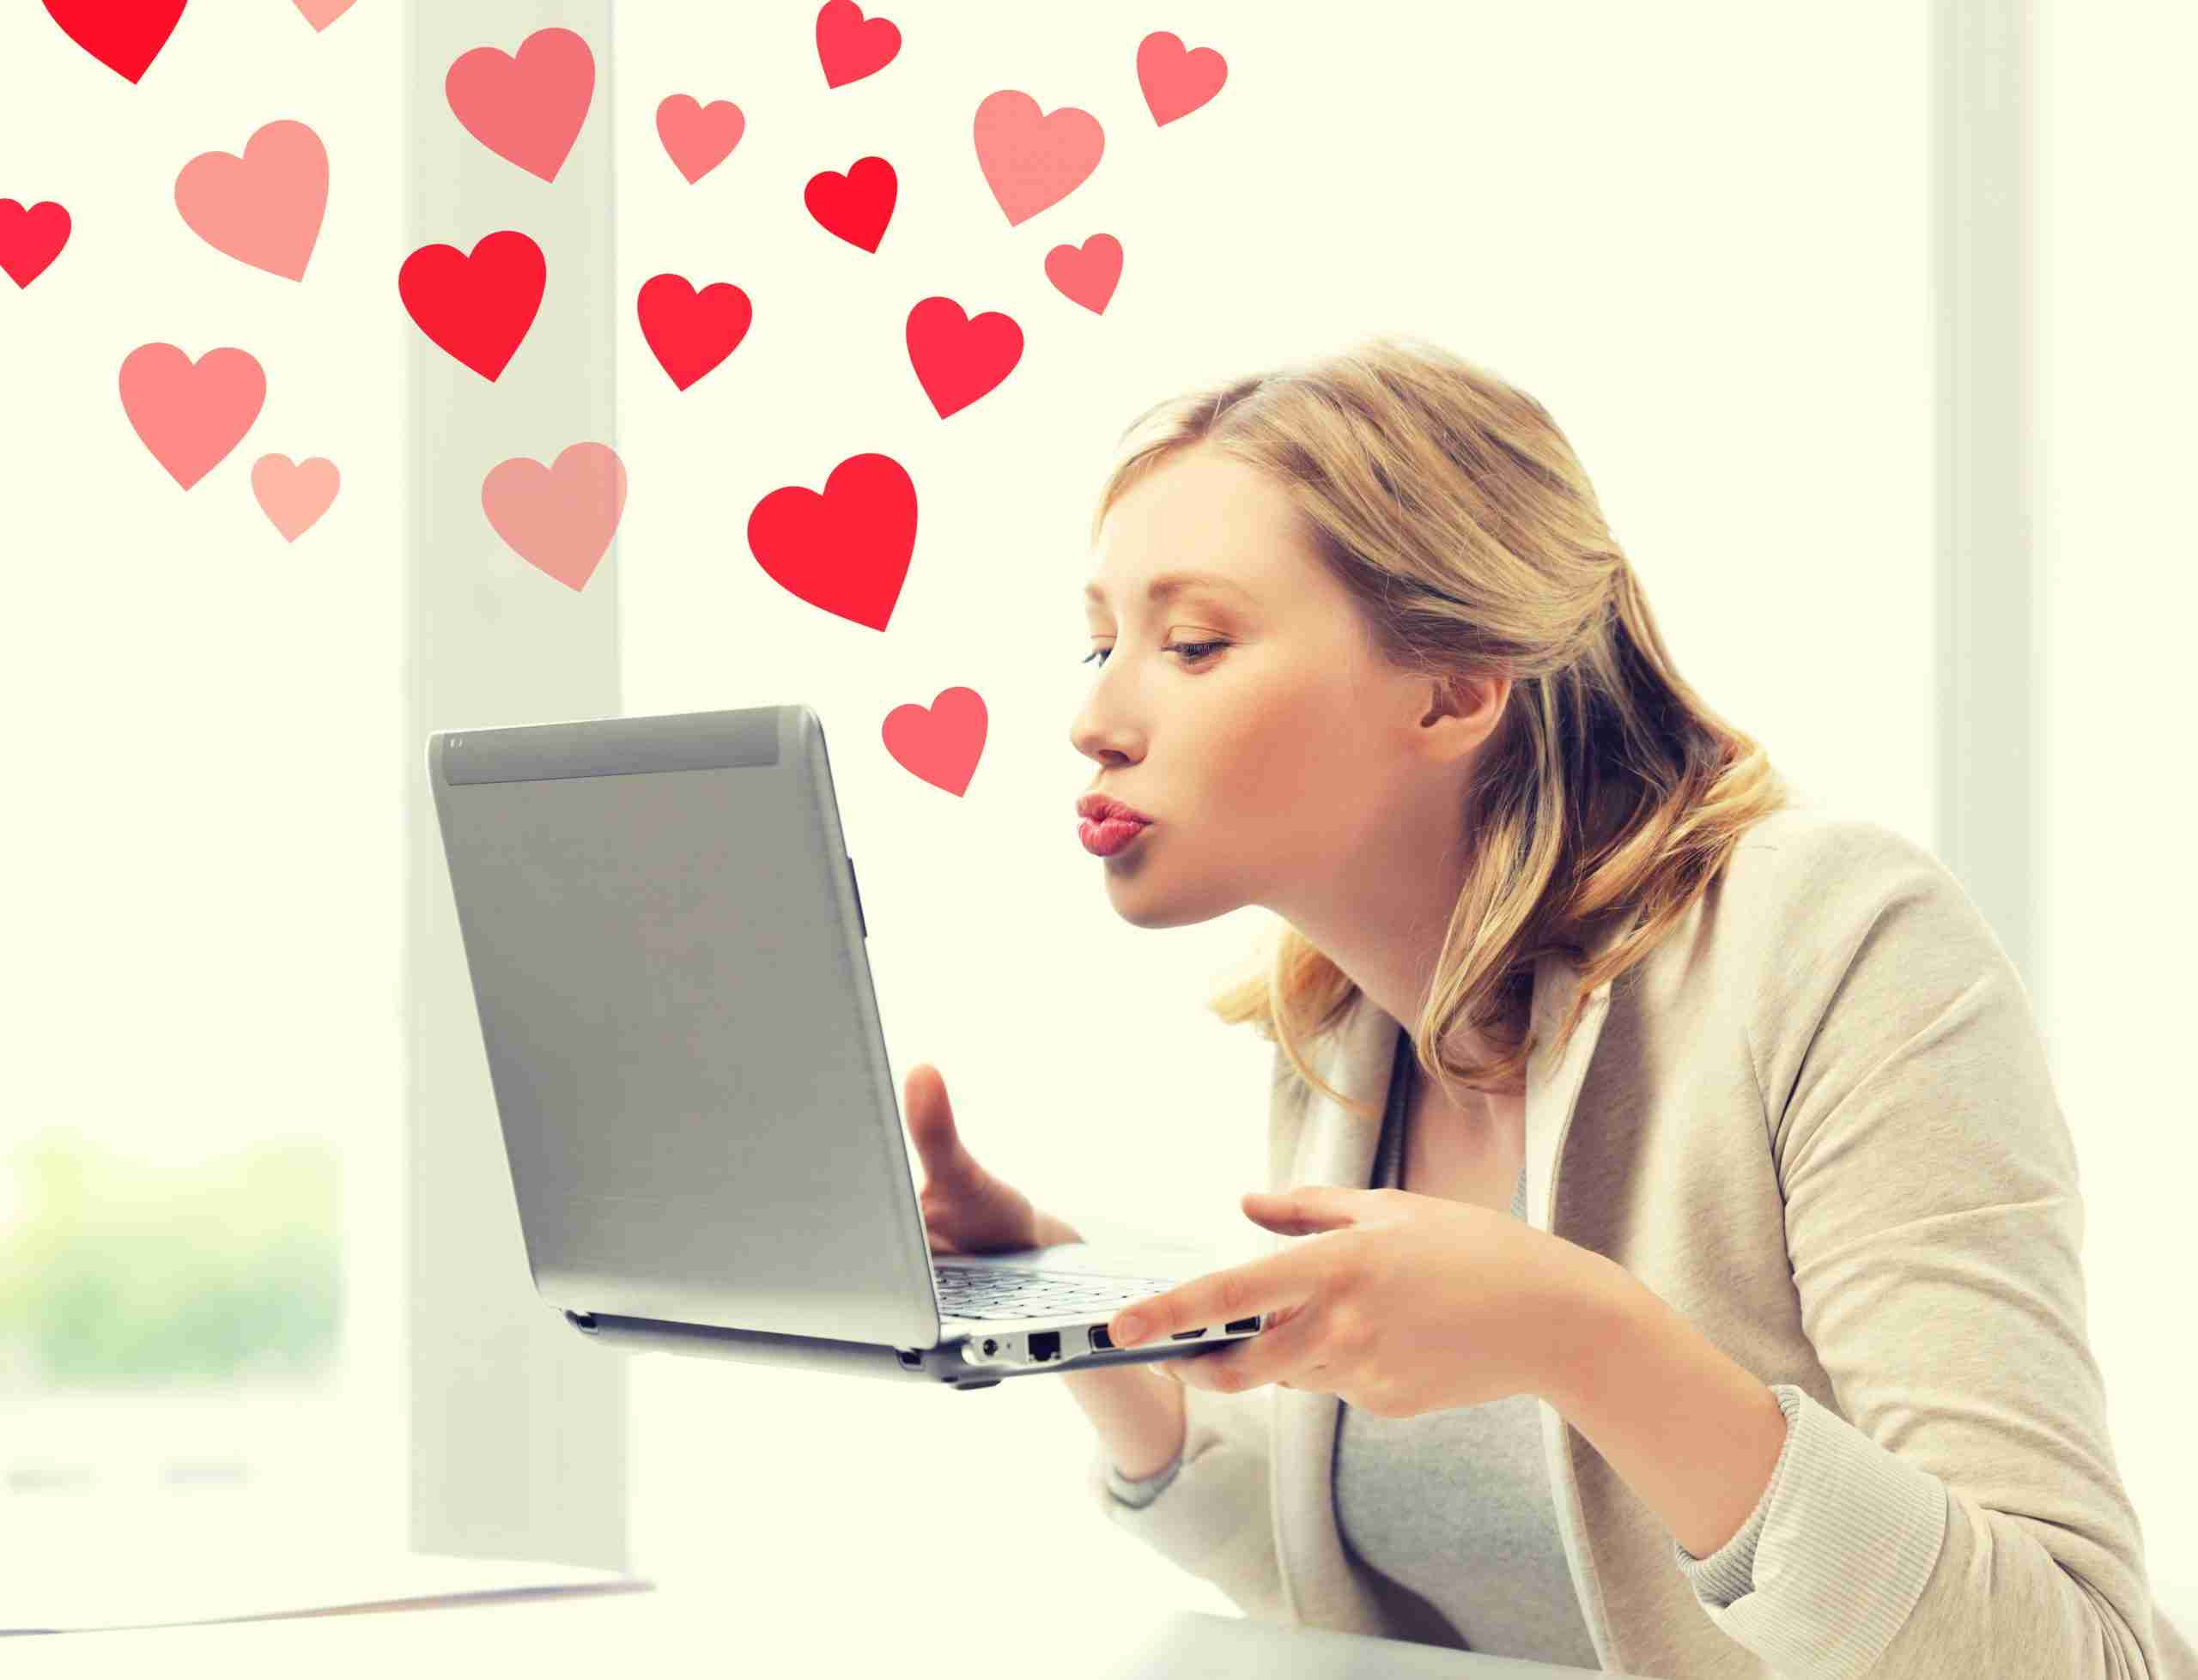 Why A Virtual Relationship Can Lead To Heartbreak